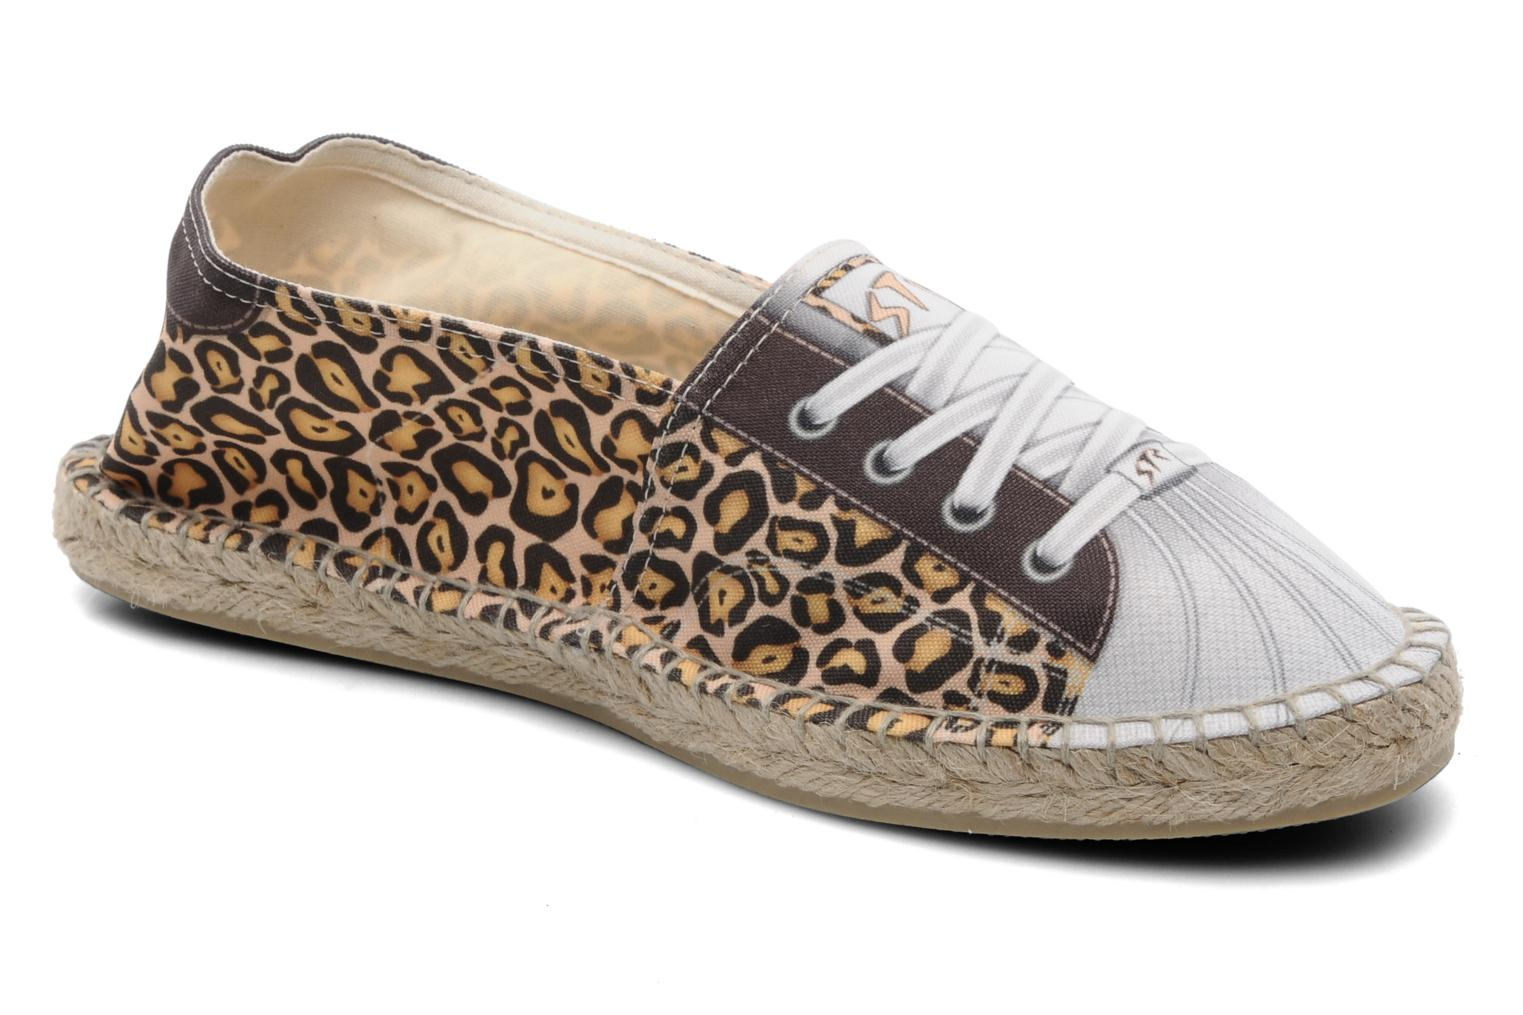 Espadrilles Holywood by String Republic